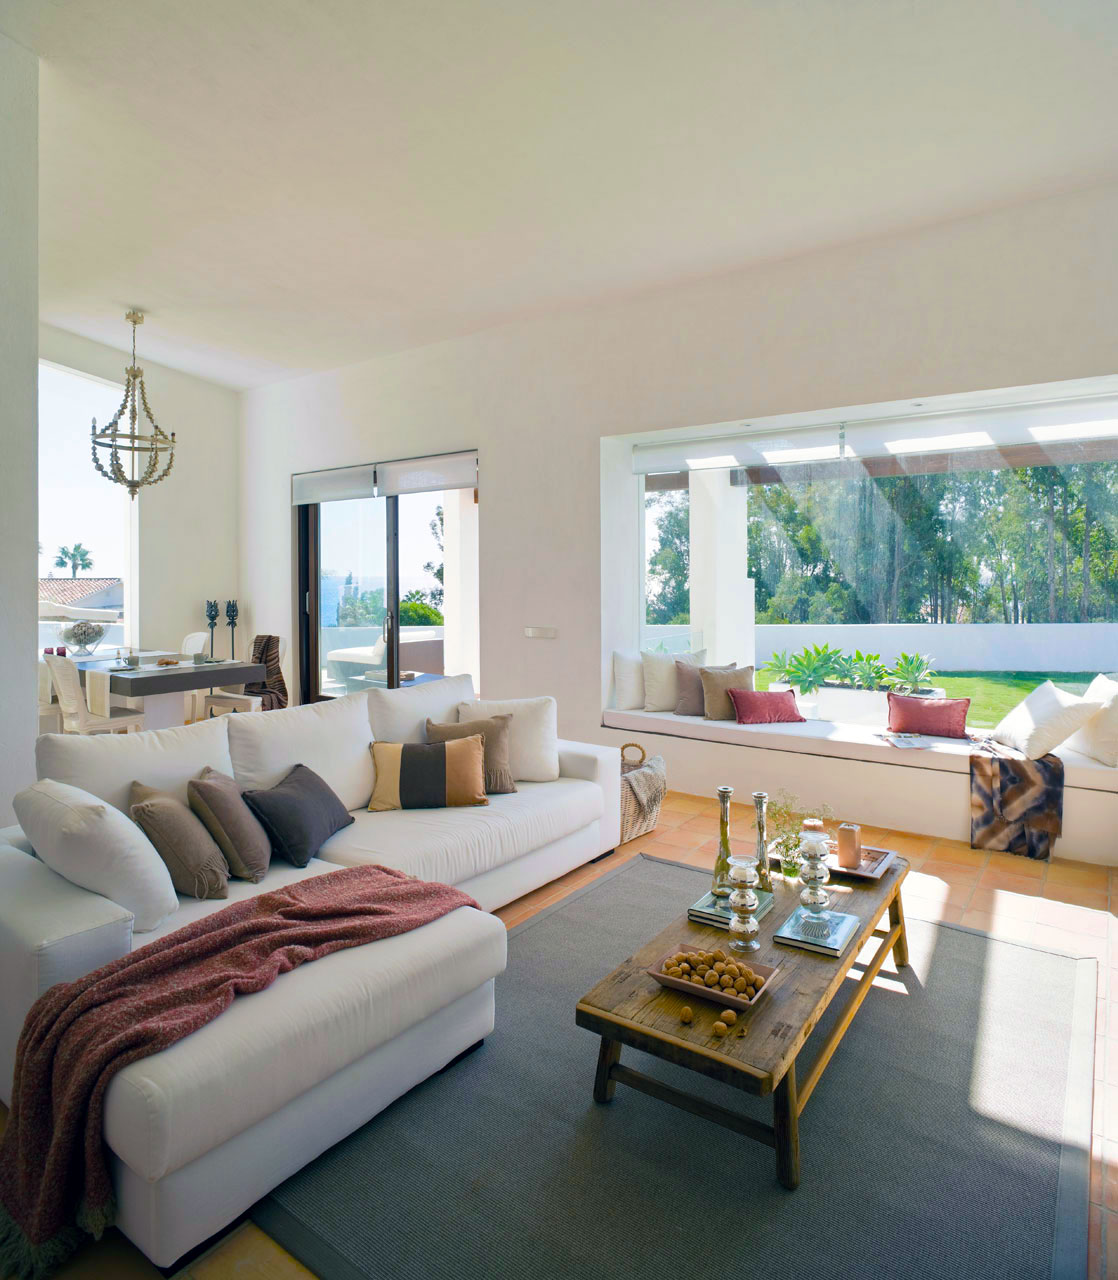 Andalusian Style Casa Fina In Spain Idea Sgn Living Room